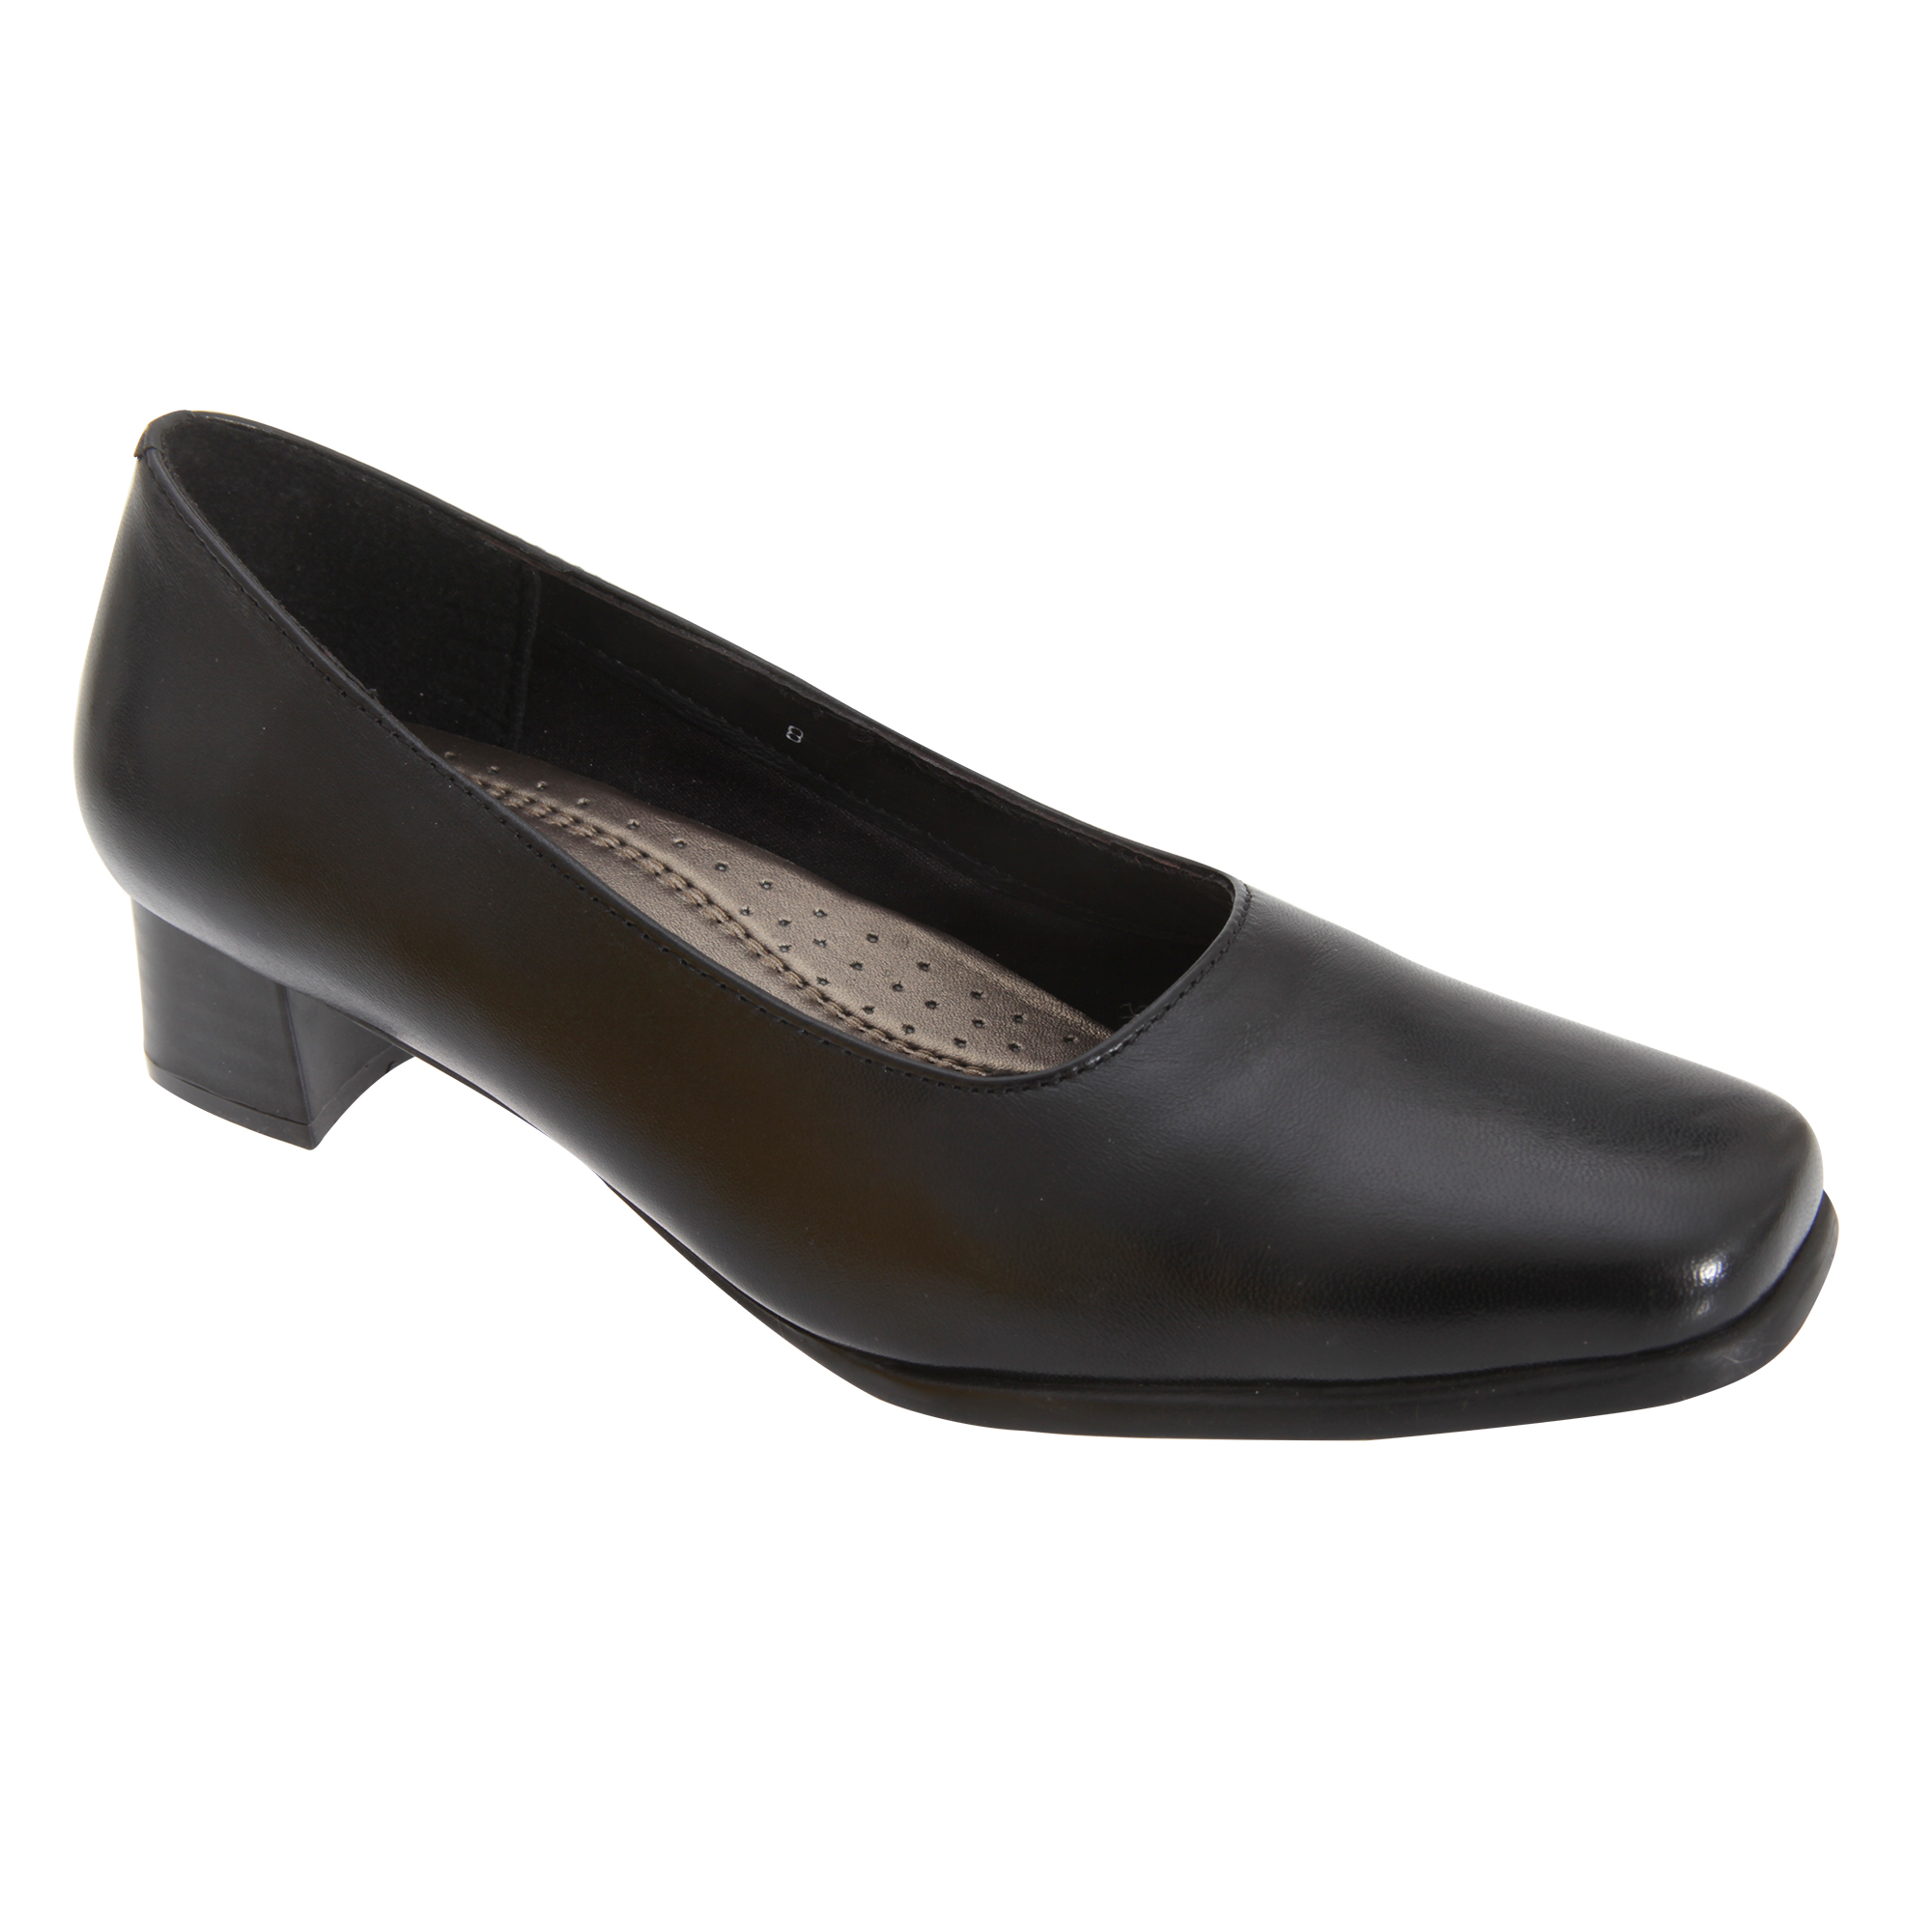 Womens Leather Court Shoes with FREE Shipping & Exchanges, and a % price guarantee. Choose from a huge selection of Womens Leather Court Shoes styles.